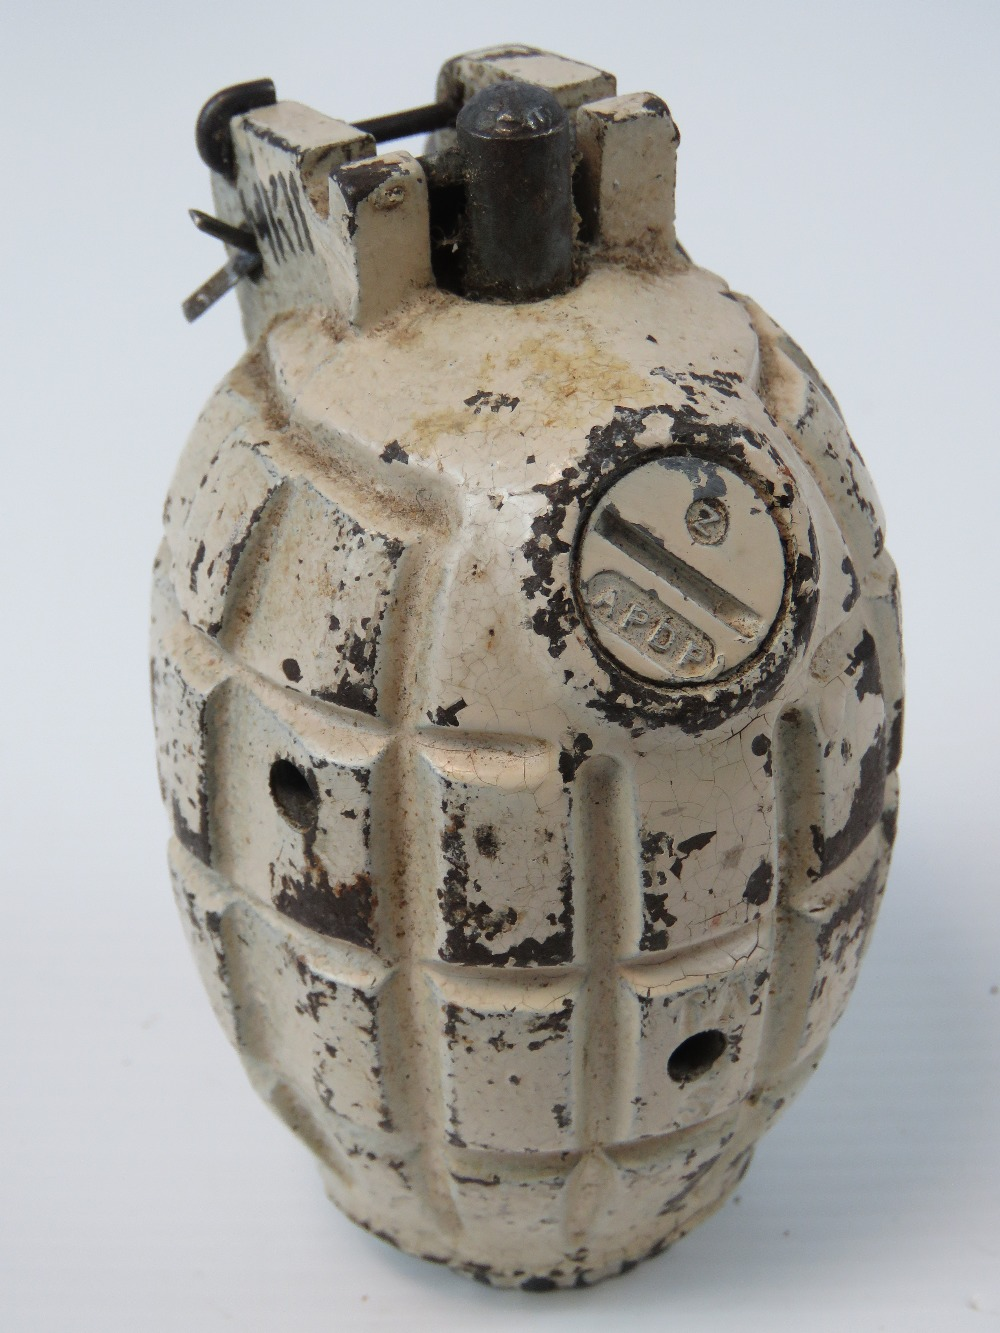 An inert British WWII Mk2 Mills grenade, painted in Artic /Winter camouflage, fuse plug dated 1945. - Image 2 of 3